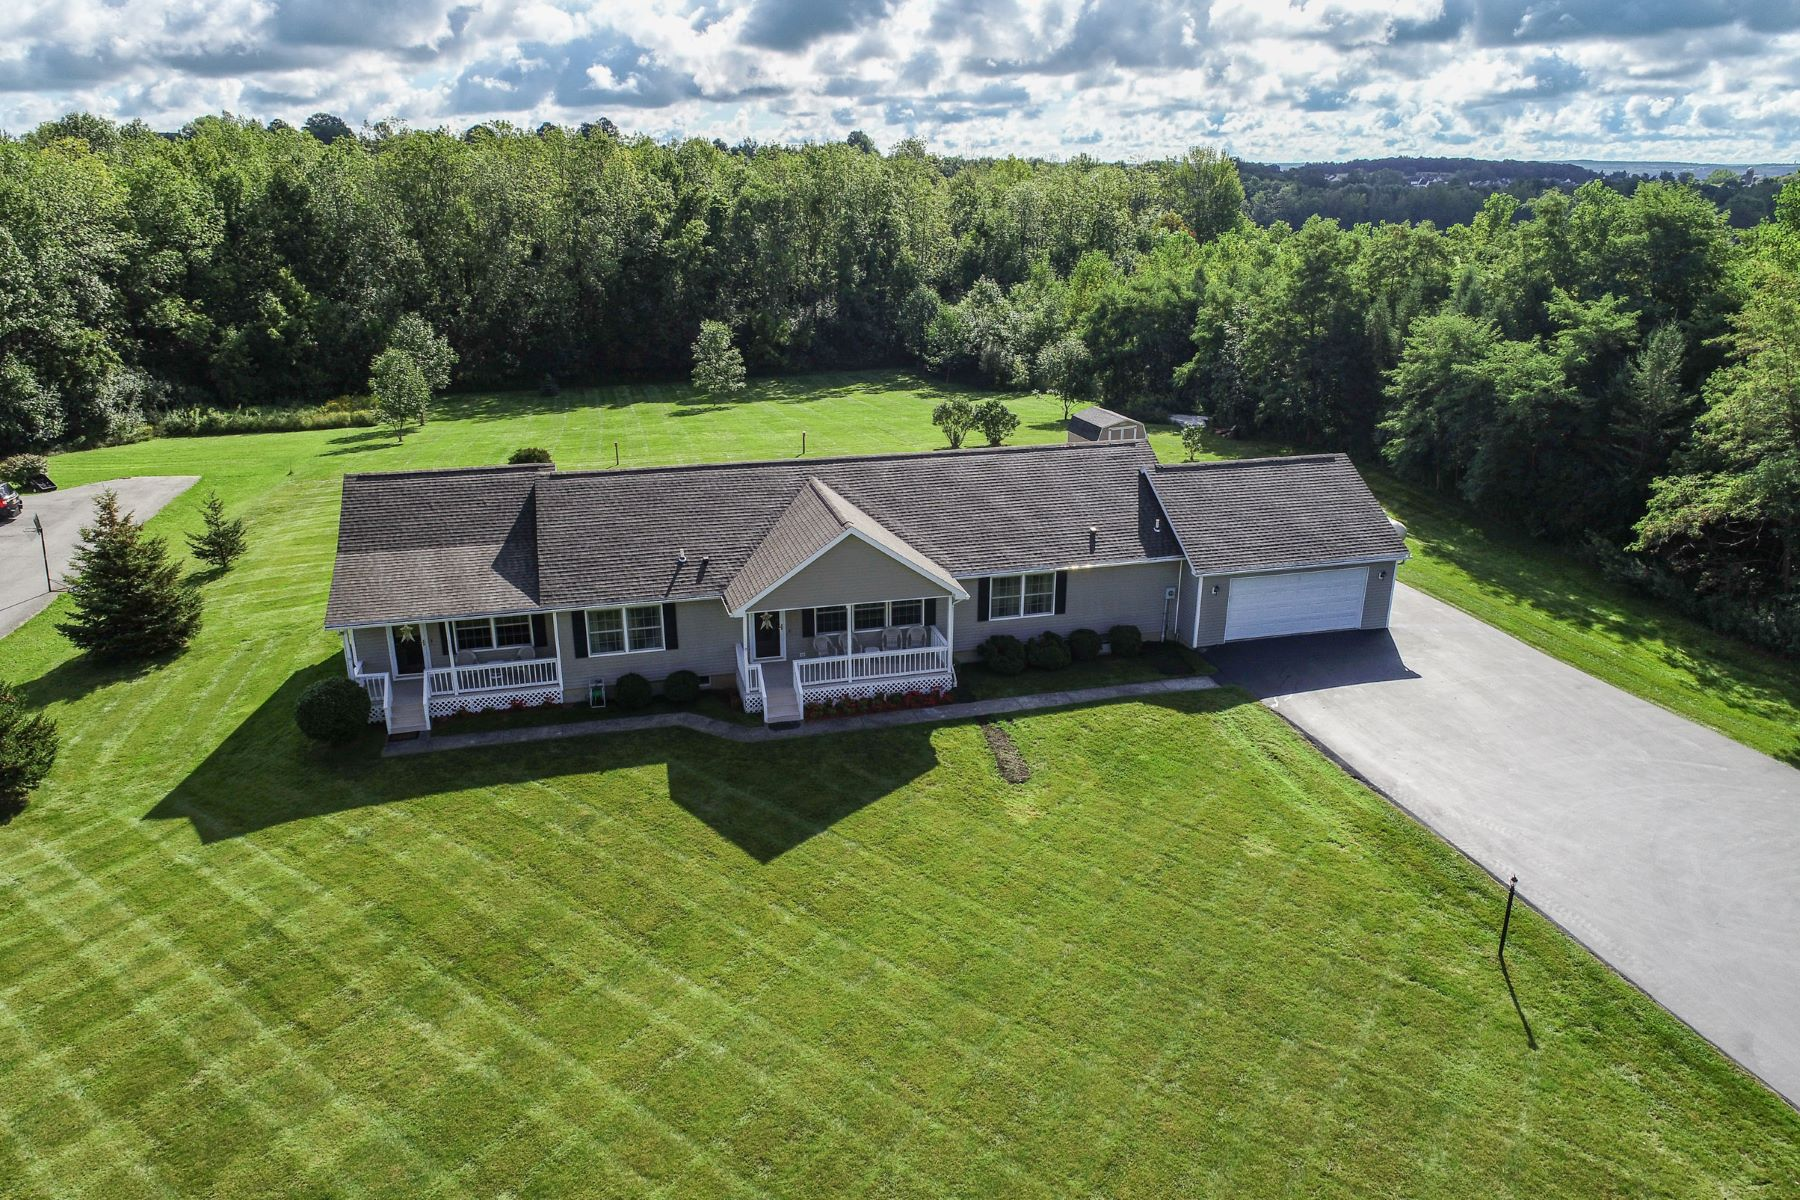 Single Family Homes für Verkauf beim Custom Super Ranch with True In-Law Apartment 3731 State Route 21 South, Canandaigua, New York 14424 Vereinigte Staaten